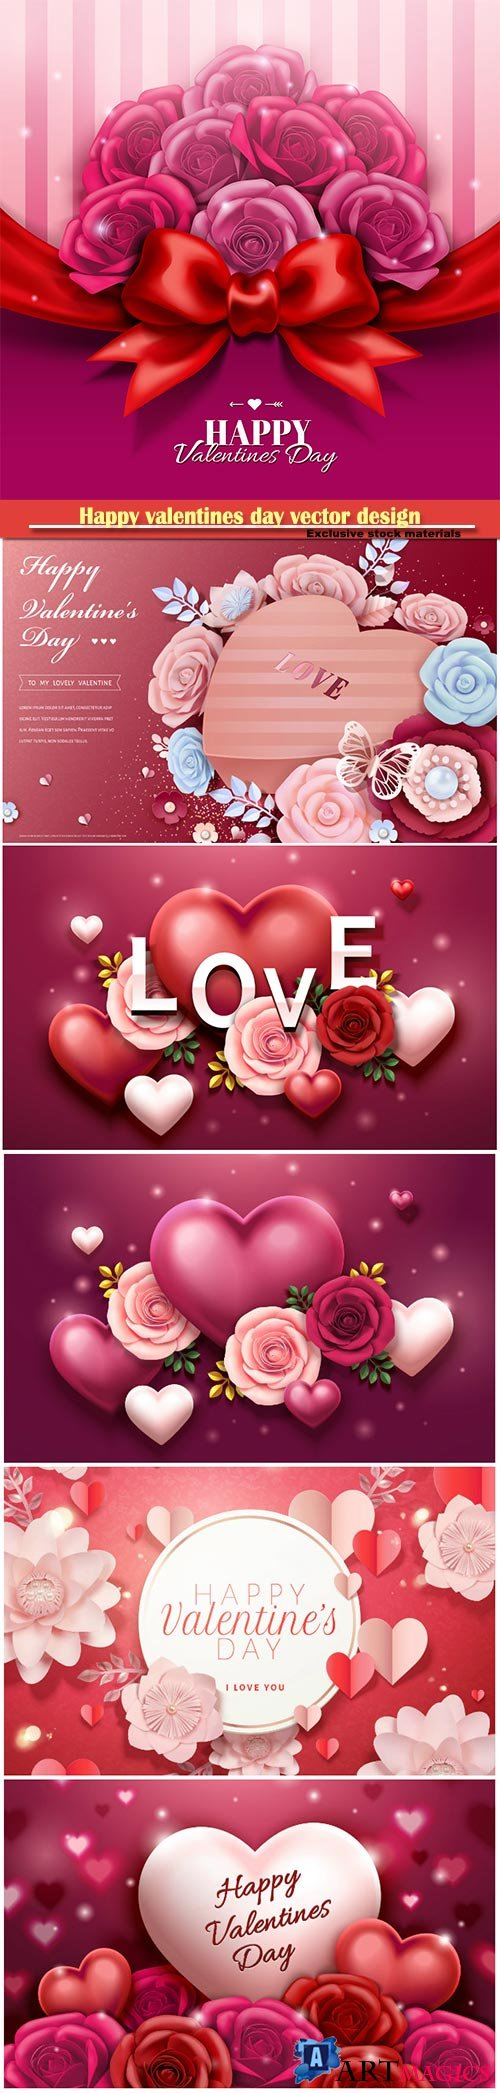 Happy valentines day vector design with heart, balloons, roses in 3d illustration # 2